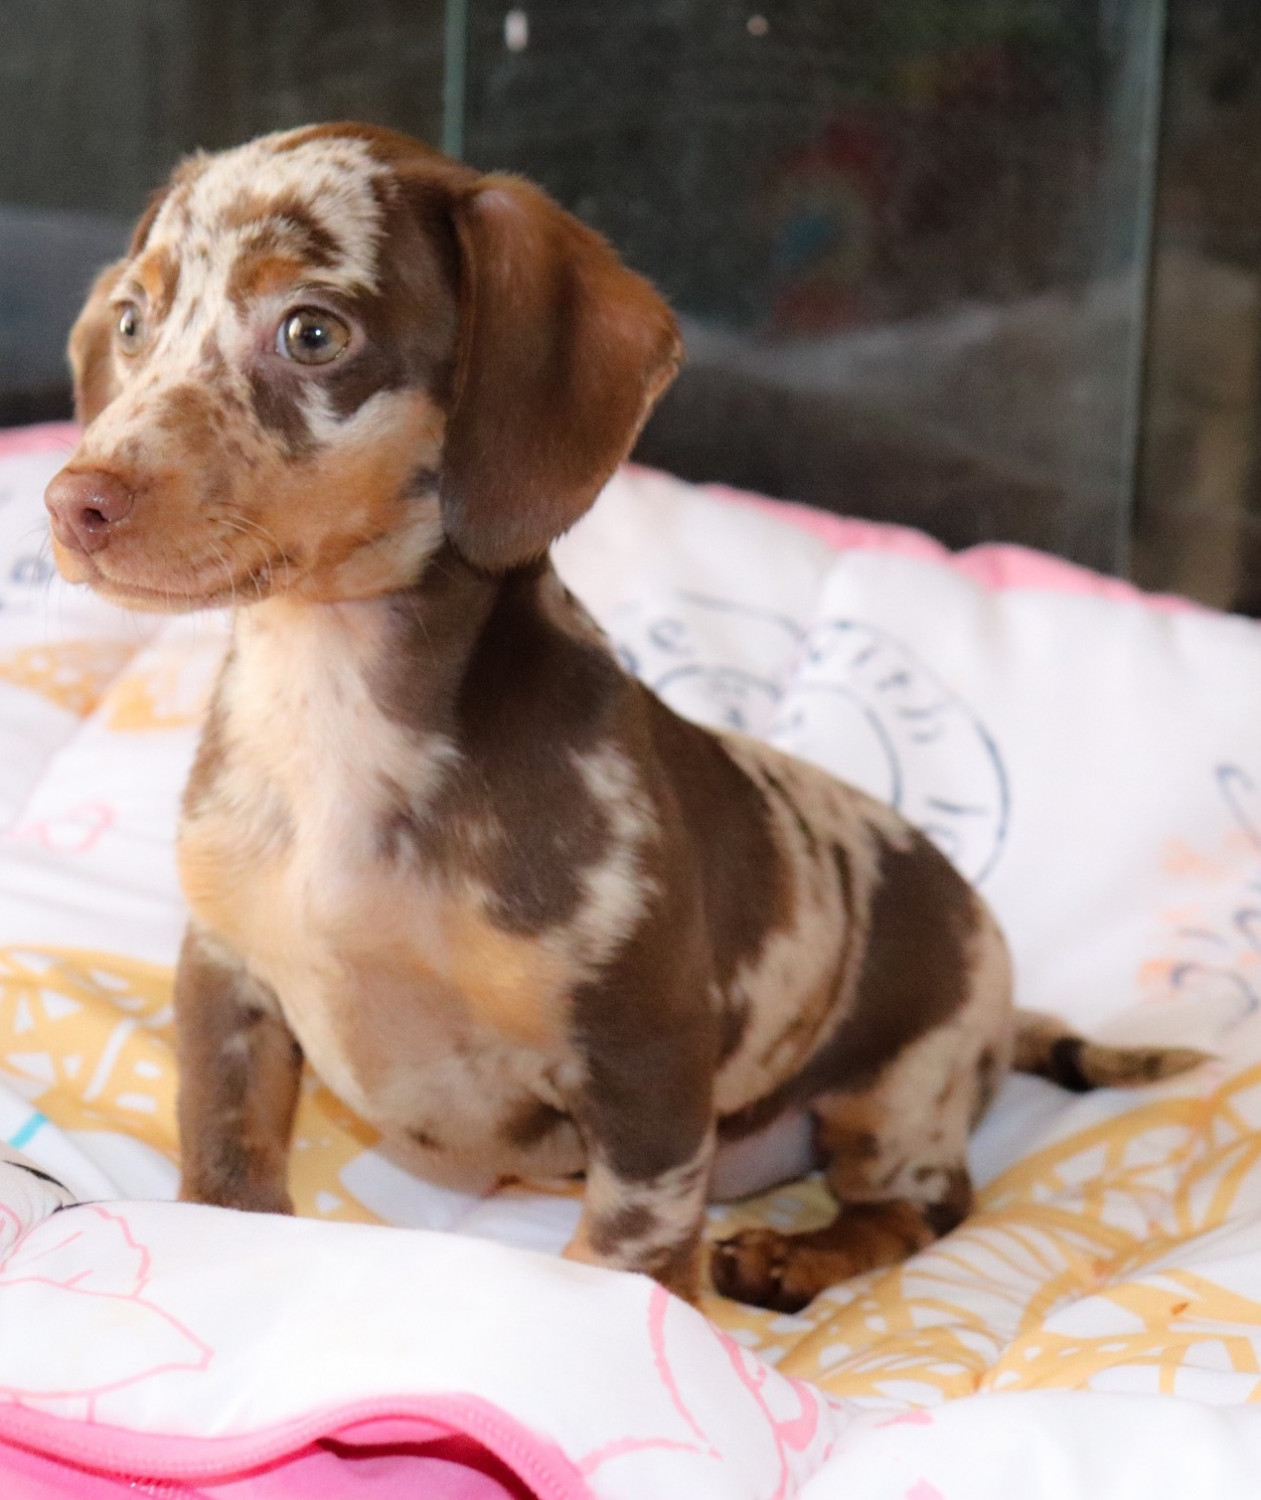 Dachshund Puppies For Sale | Kinston, NC #294773 | Petzlover